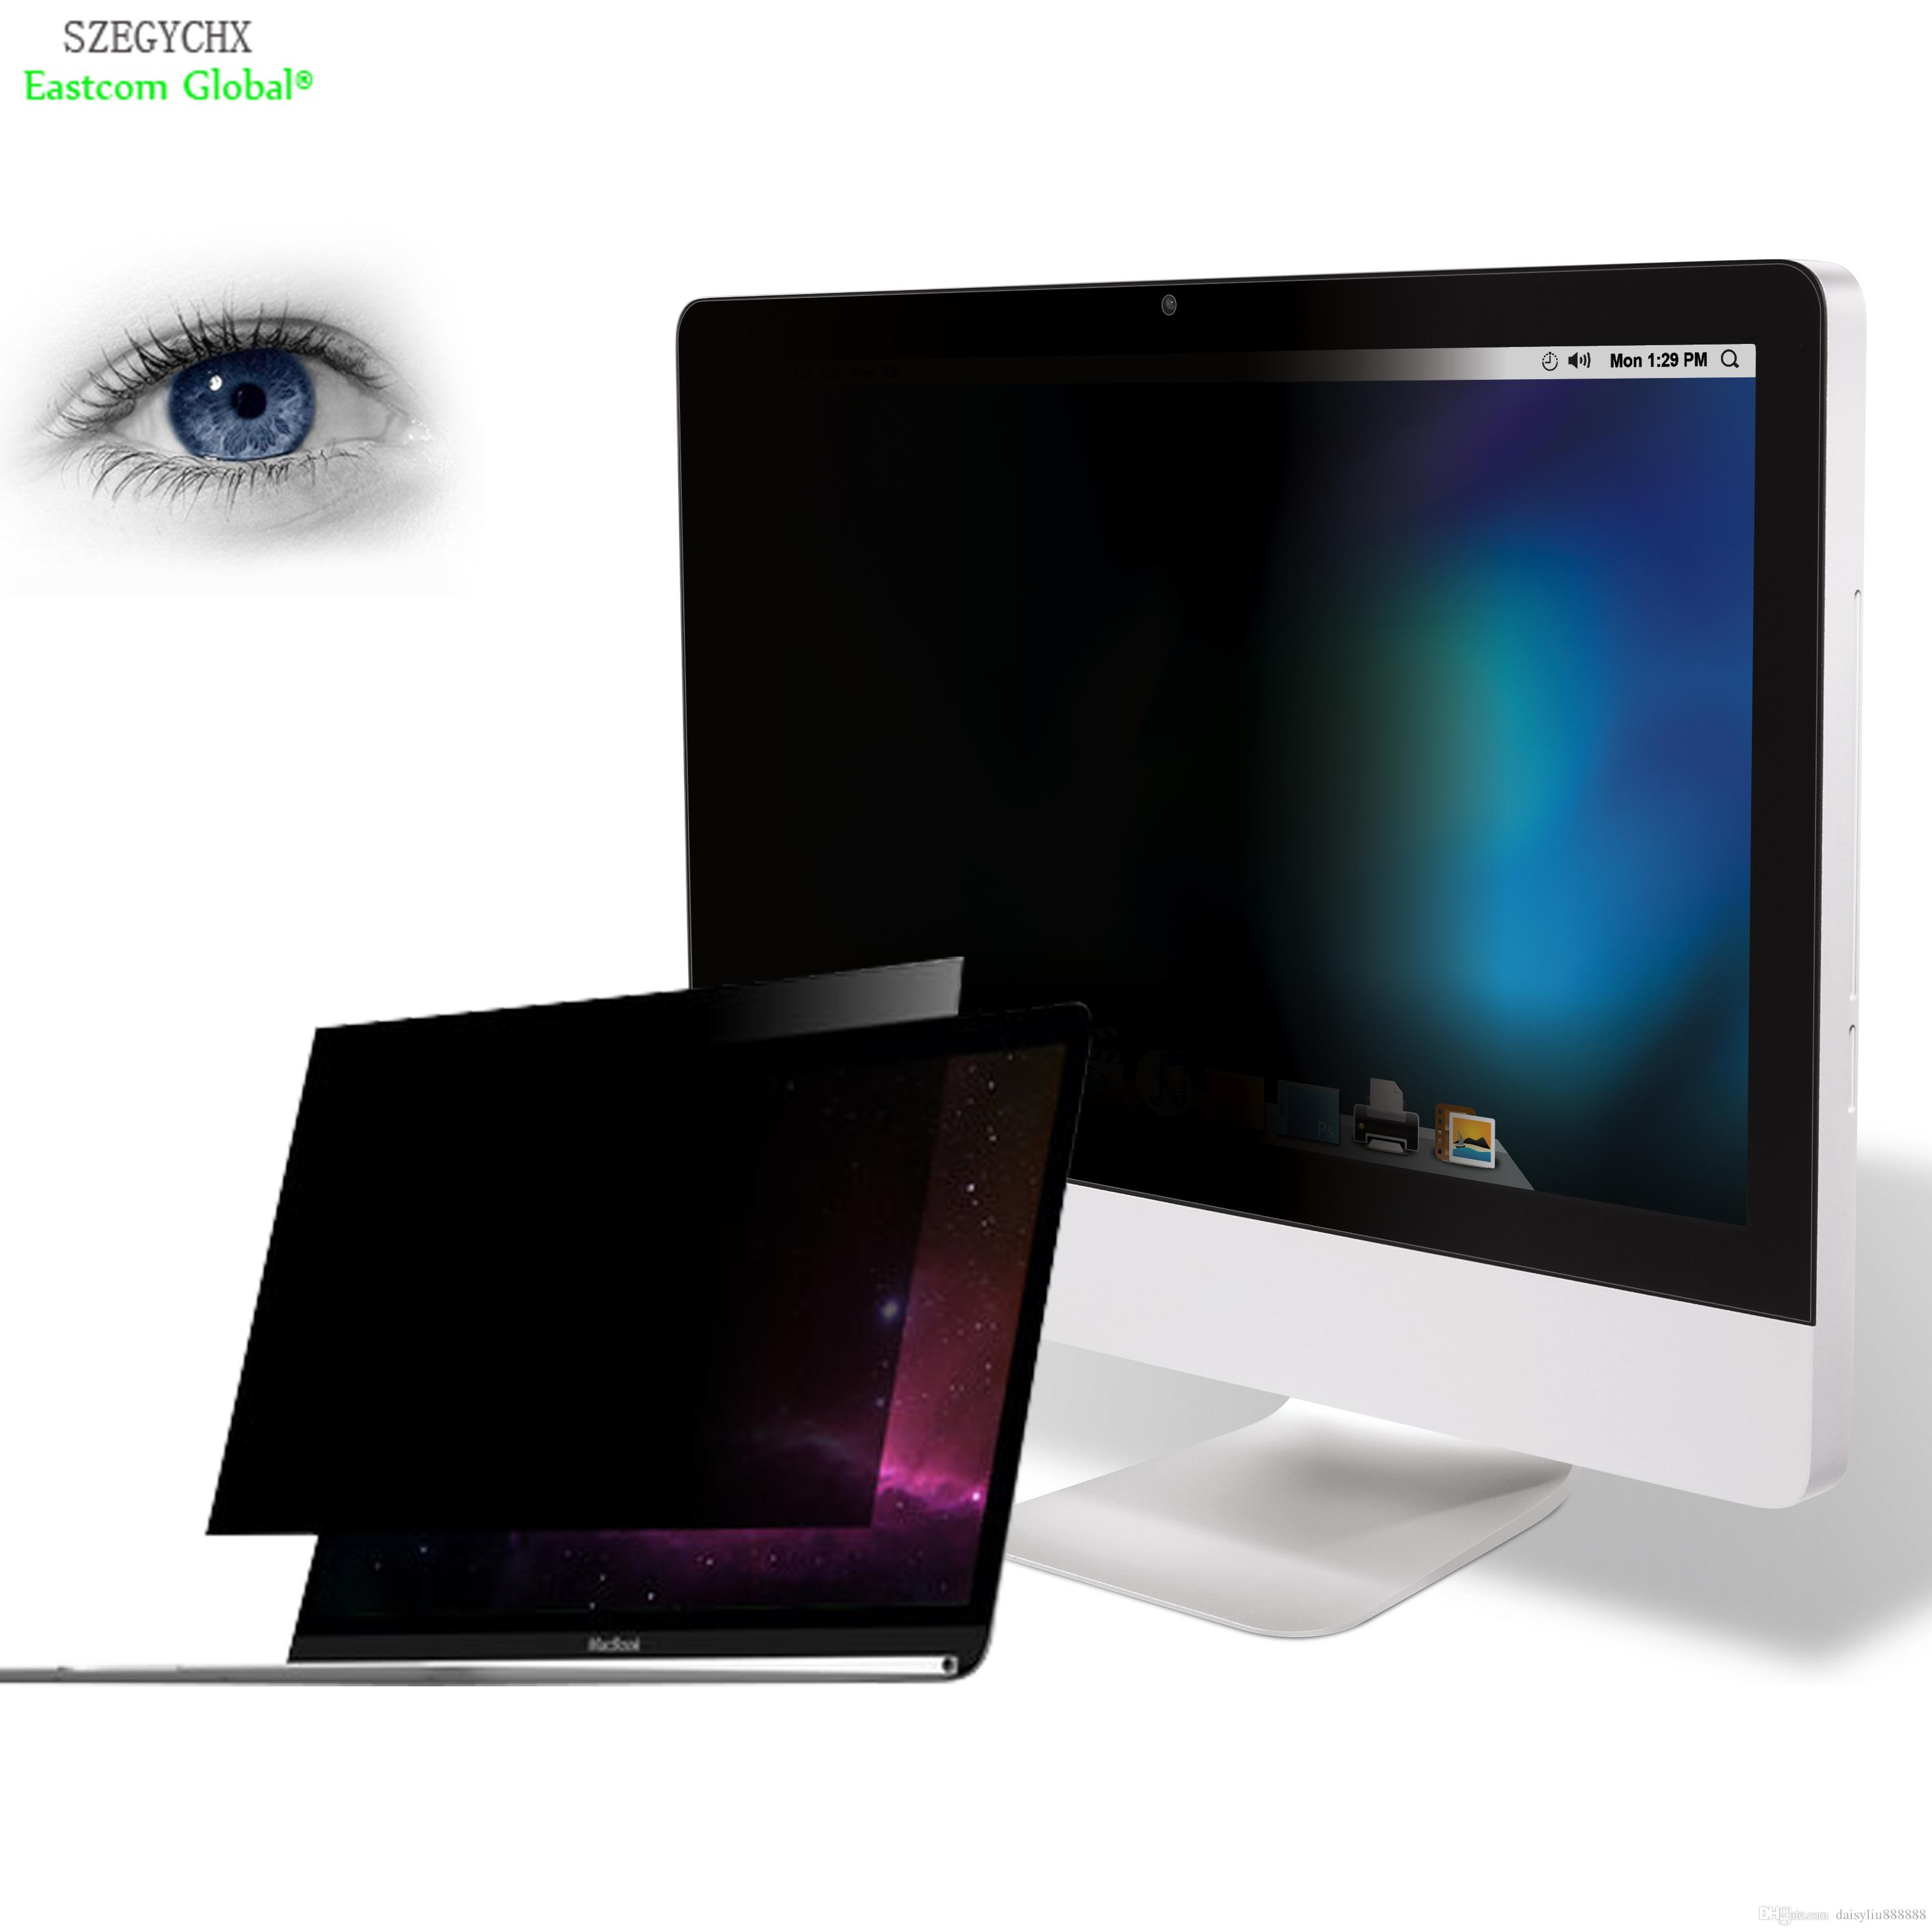 huge discount f159a 84cf8 Anti Privacy Filter Screen Protector Computer & Office Laptop Computer  Monitor 13.1 13.3 14.1 14 15 15.3 inch No glue PET material